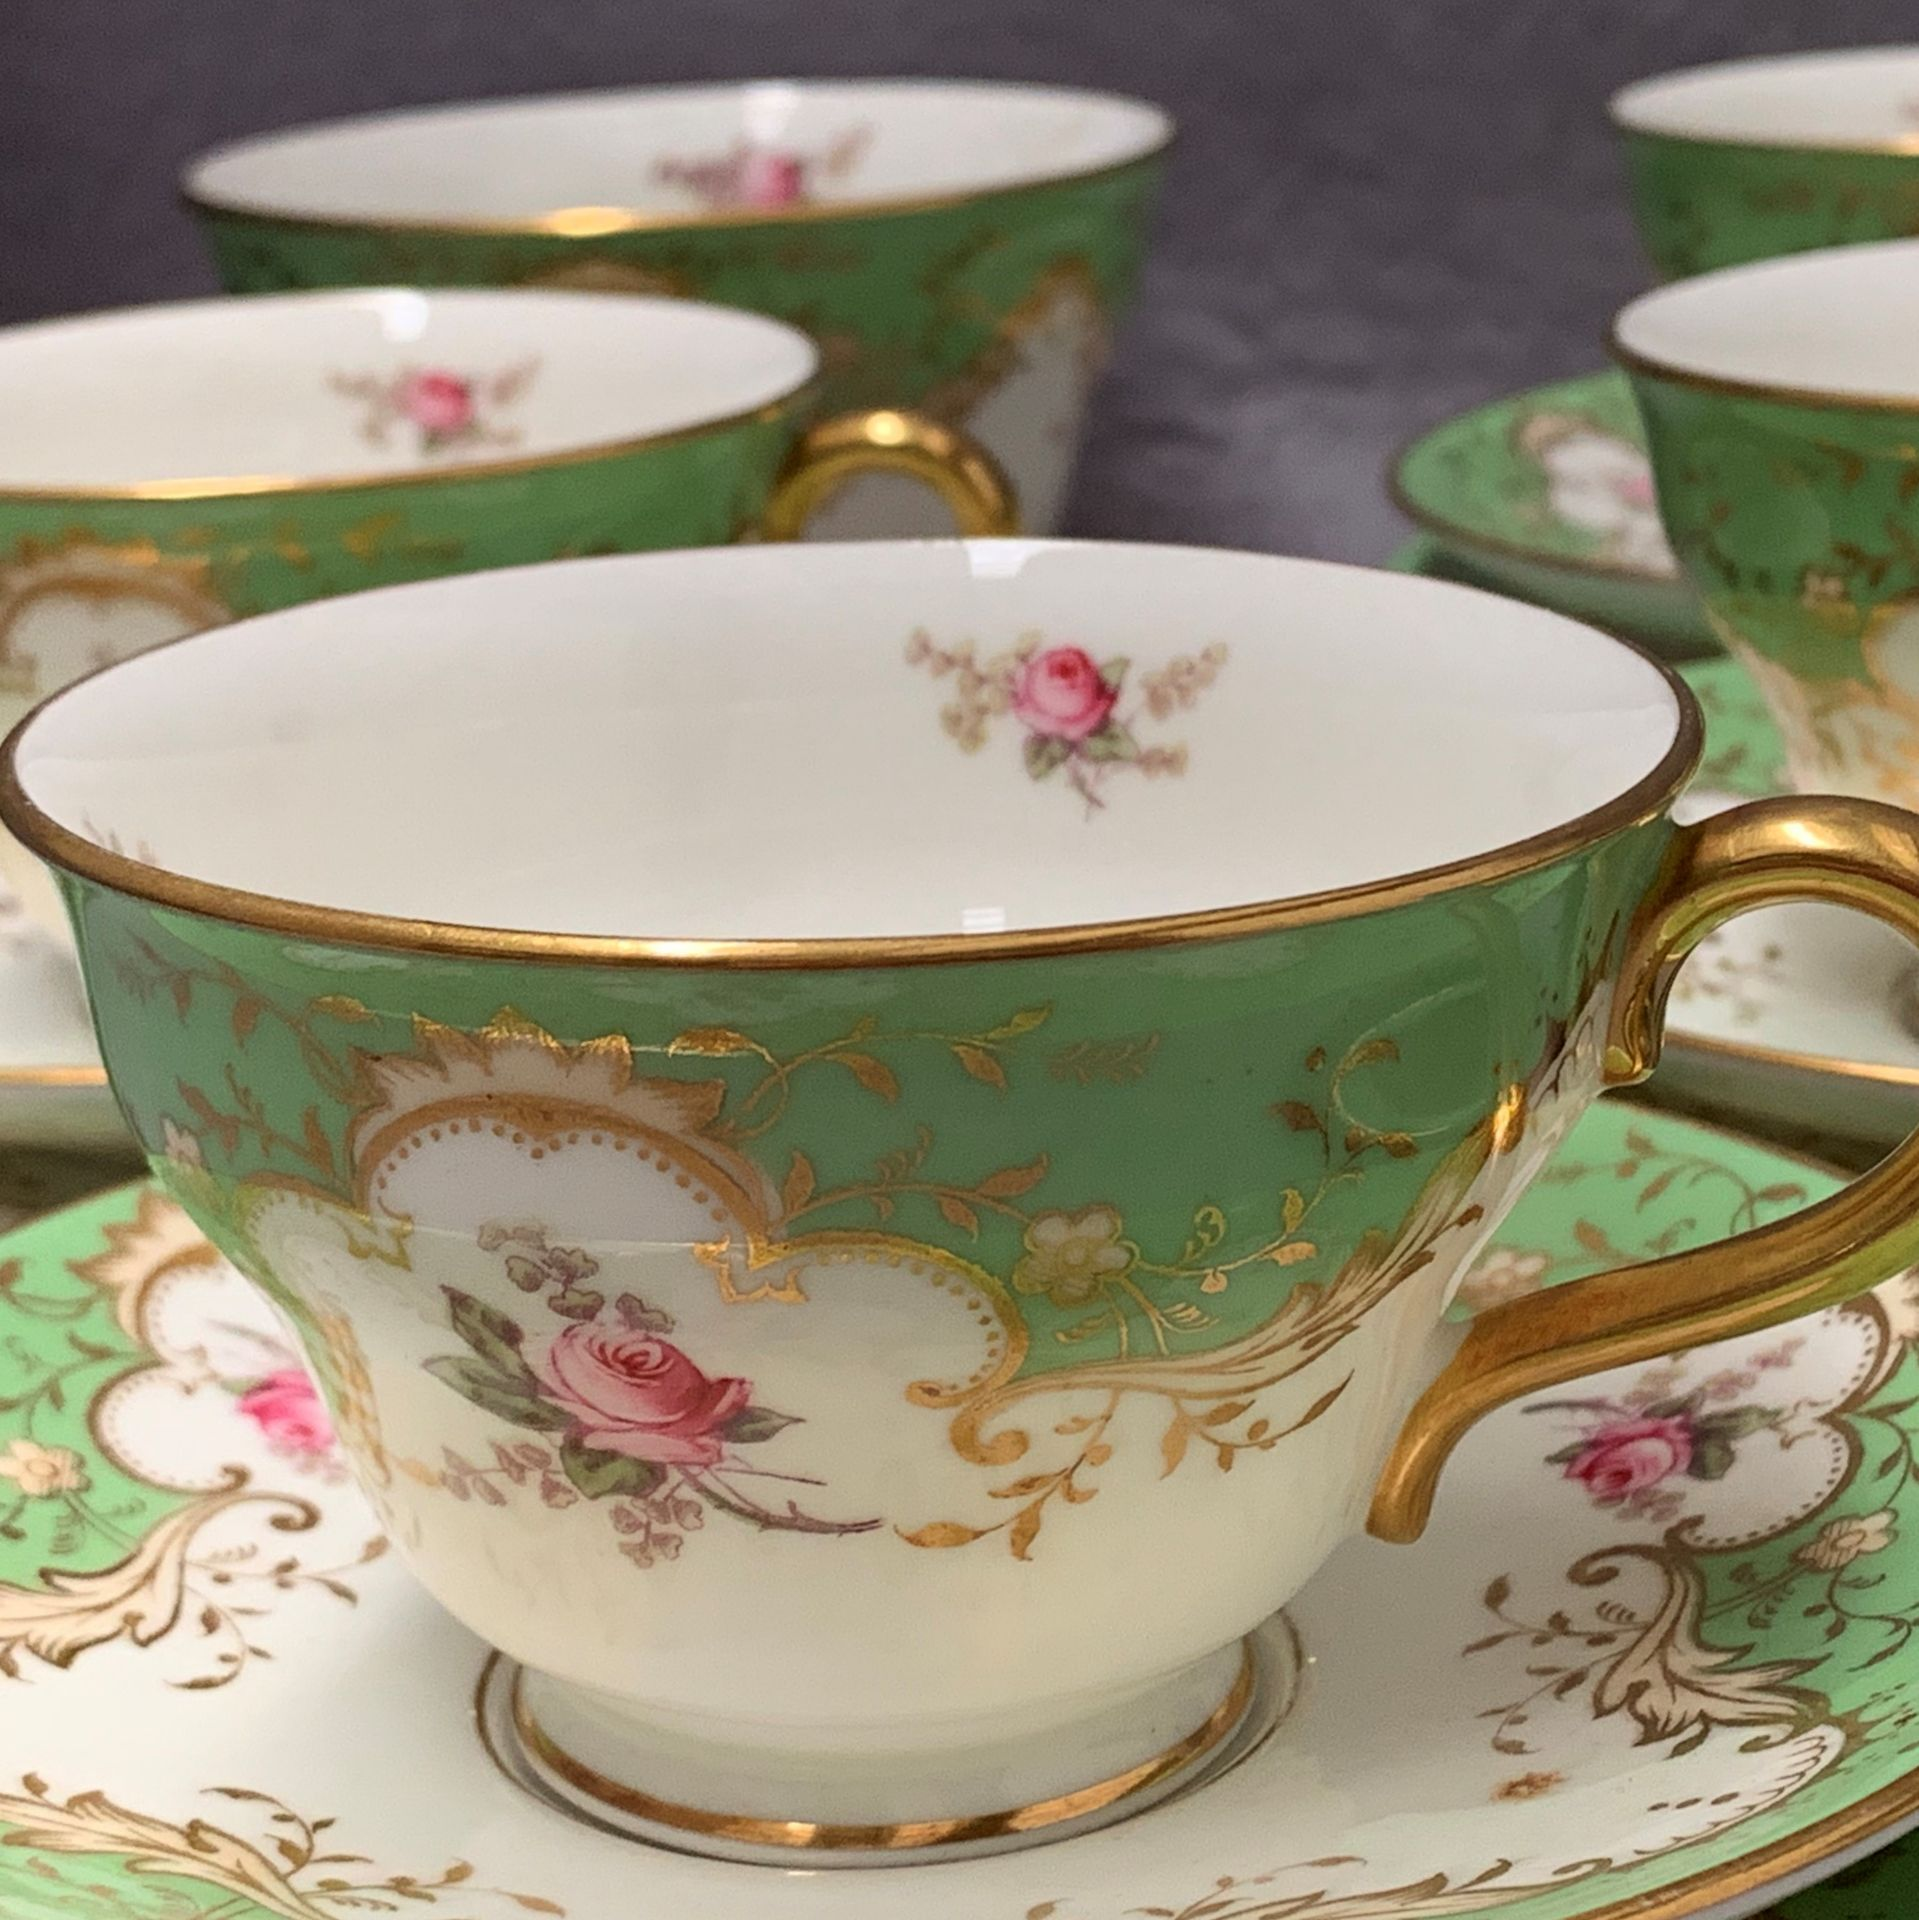 Lot 42 - Coalport, for Harrods, tea set in green and gilt with rose motif, five cups and six saucers,